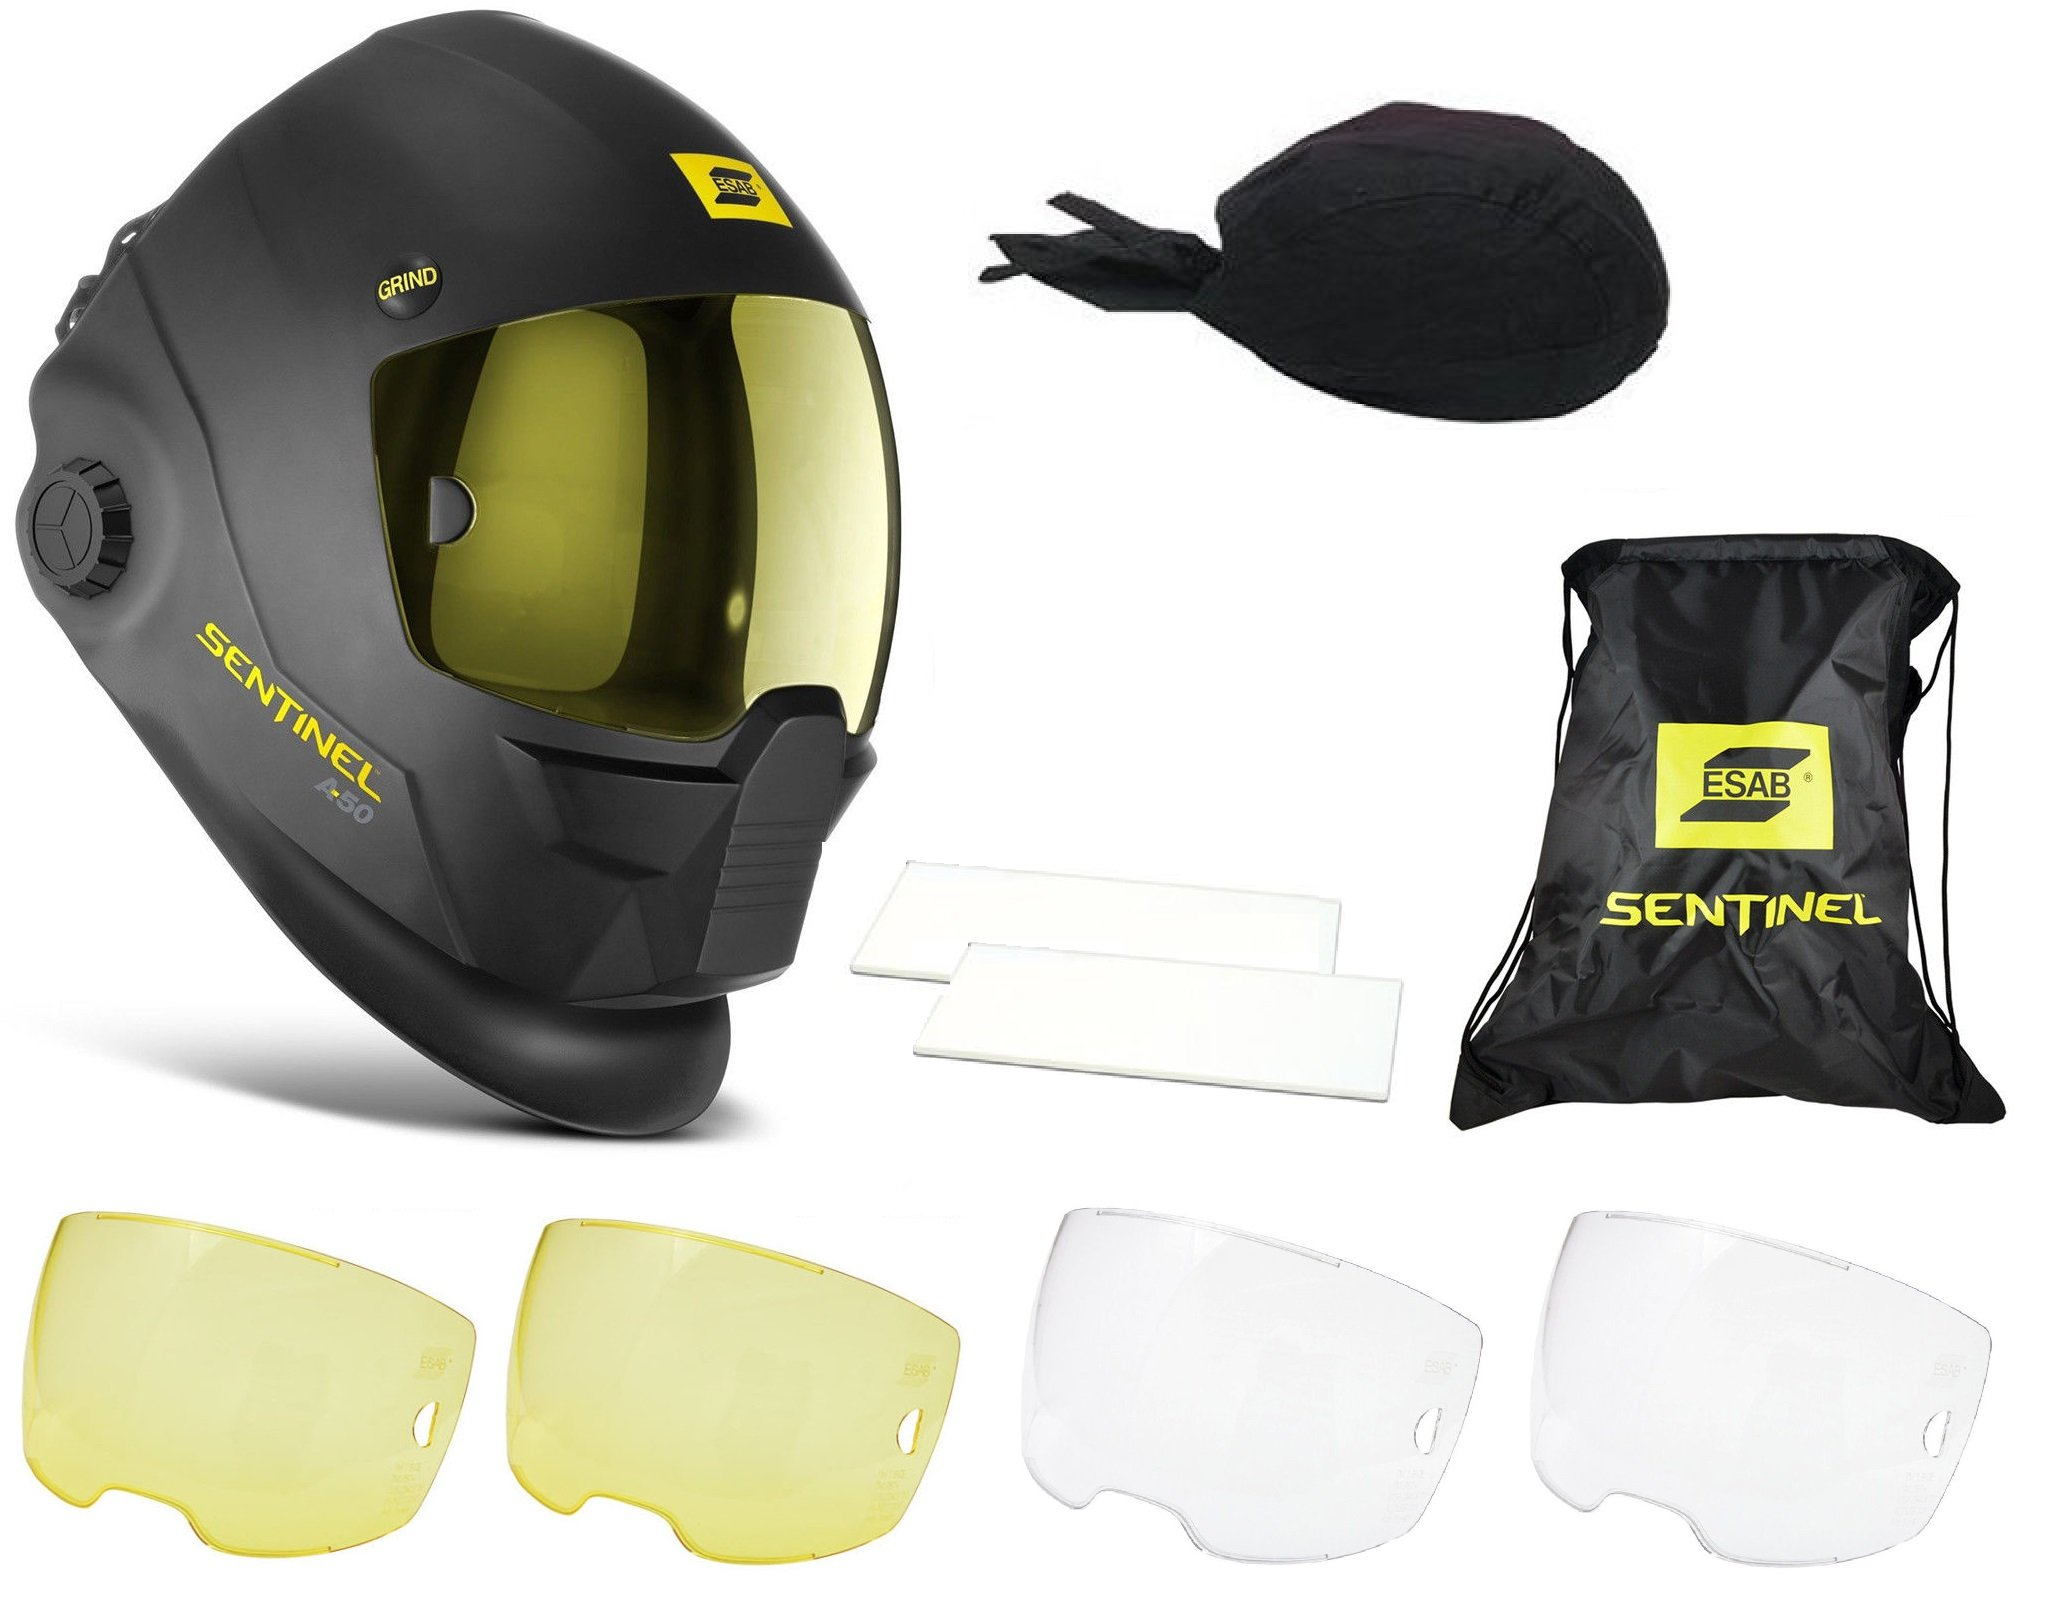 ESAB Halo Sentinel A50 Automatic Welding Helmet 0700000800 With FREE Accessories by ESAB